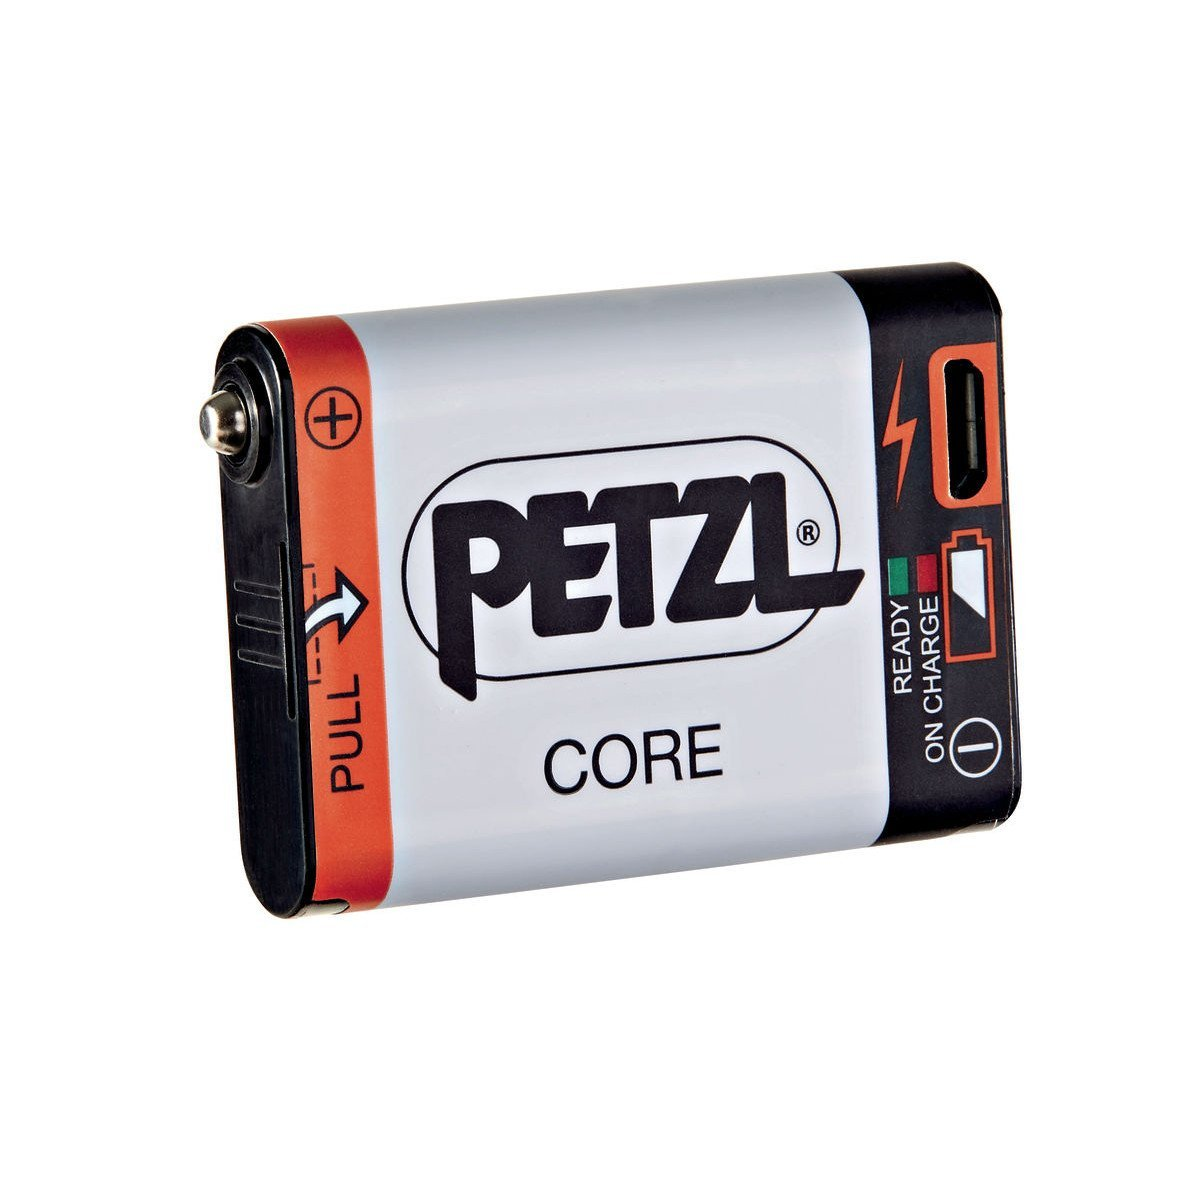 Petzl Core Battery showing the Charging area and illustrations on battery